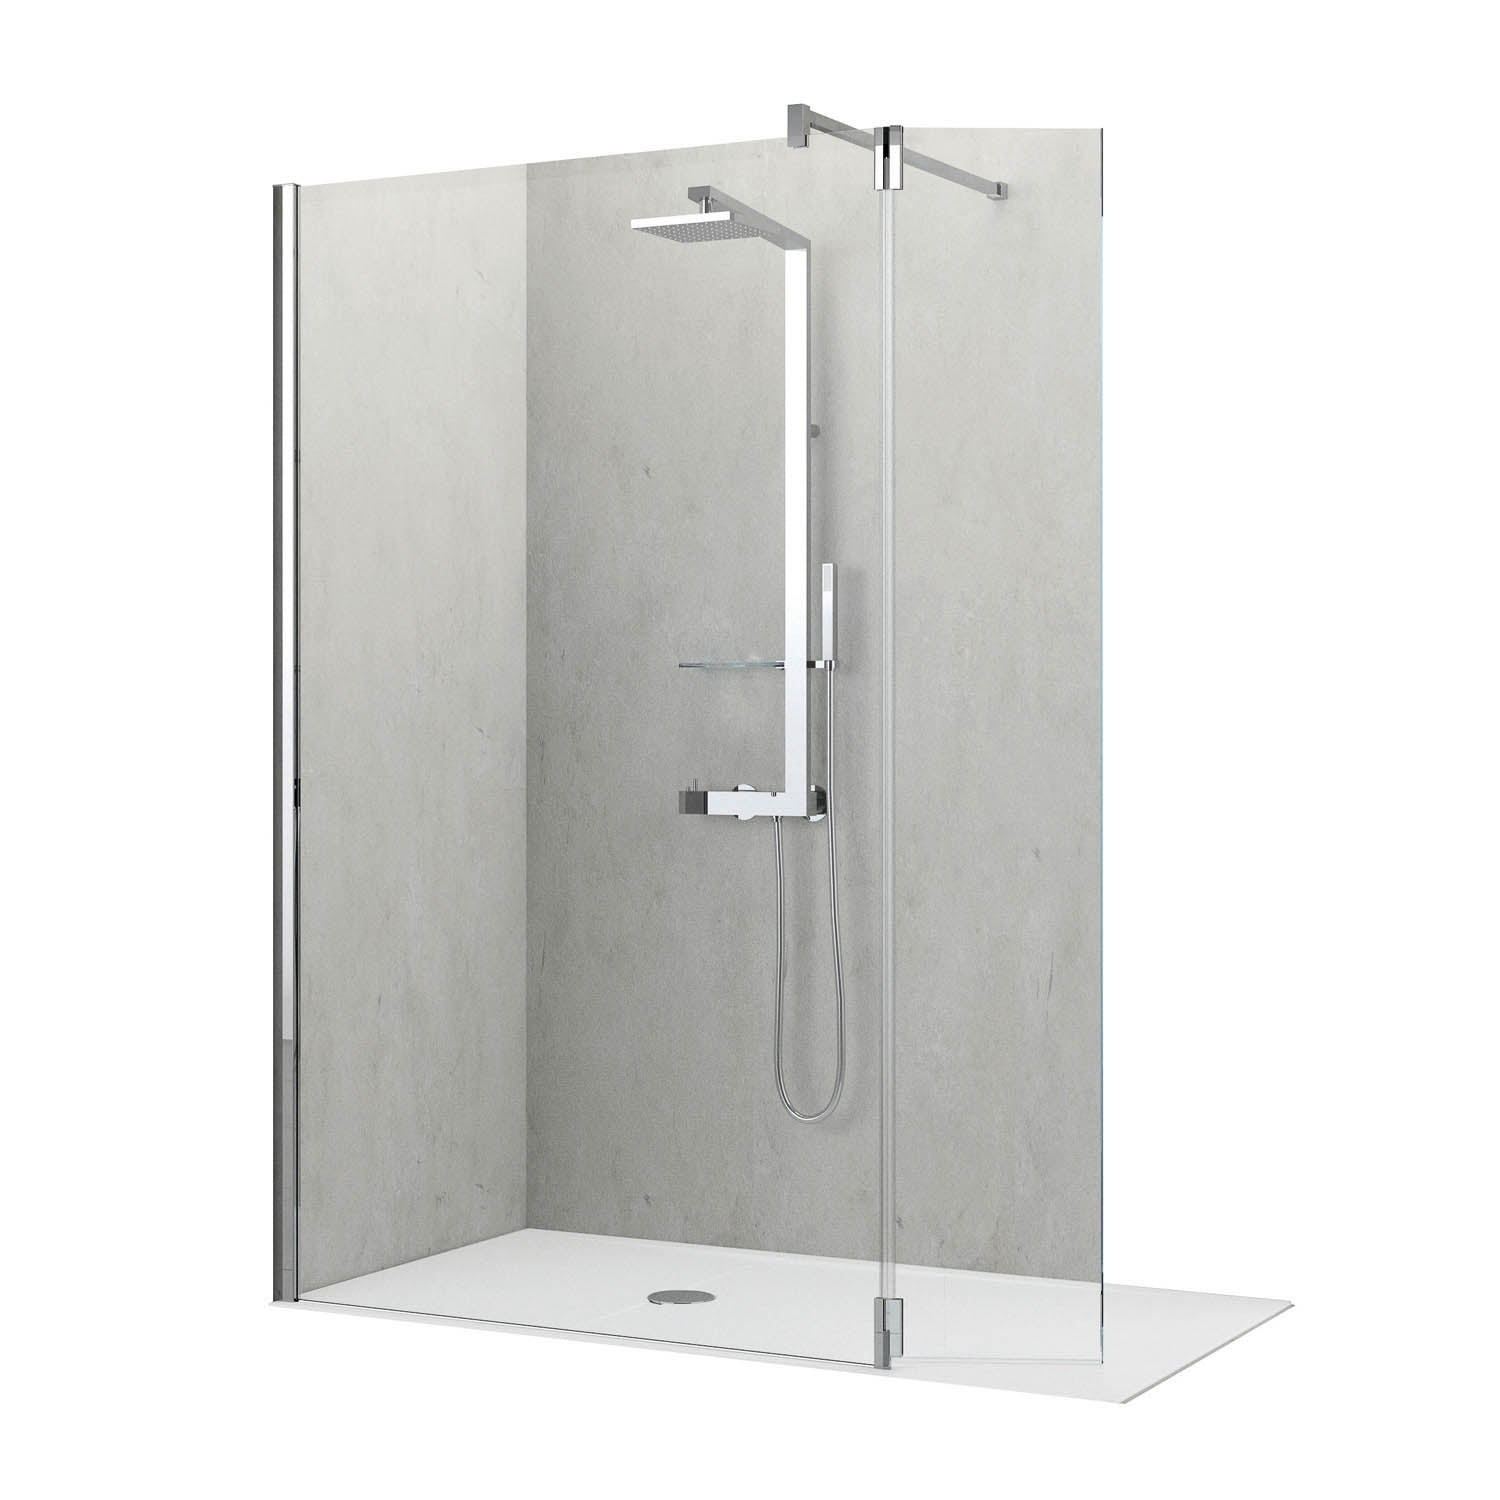 670-700mm Ergo Wet Room Screen Clear Glass with a chrome finish on a white background